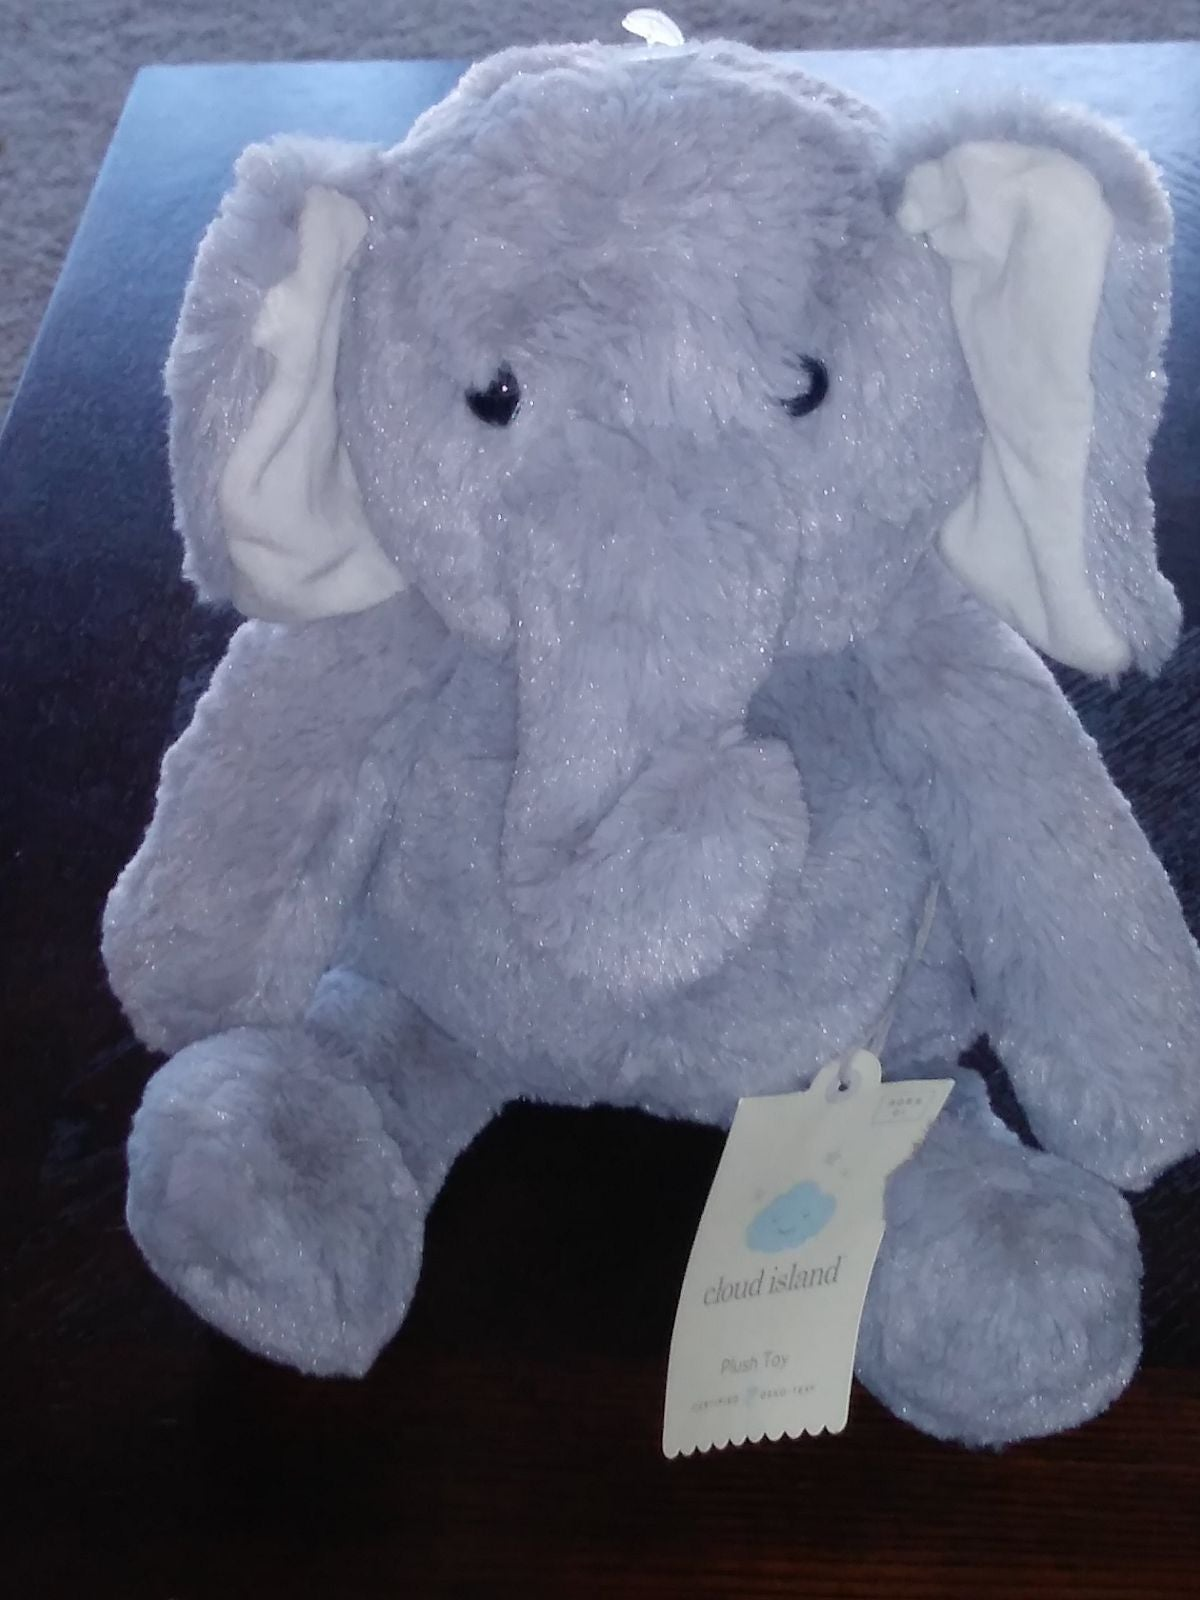 Cloud Island Elephant Plush Toy NWT